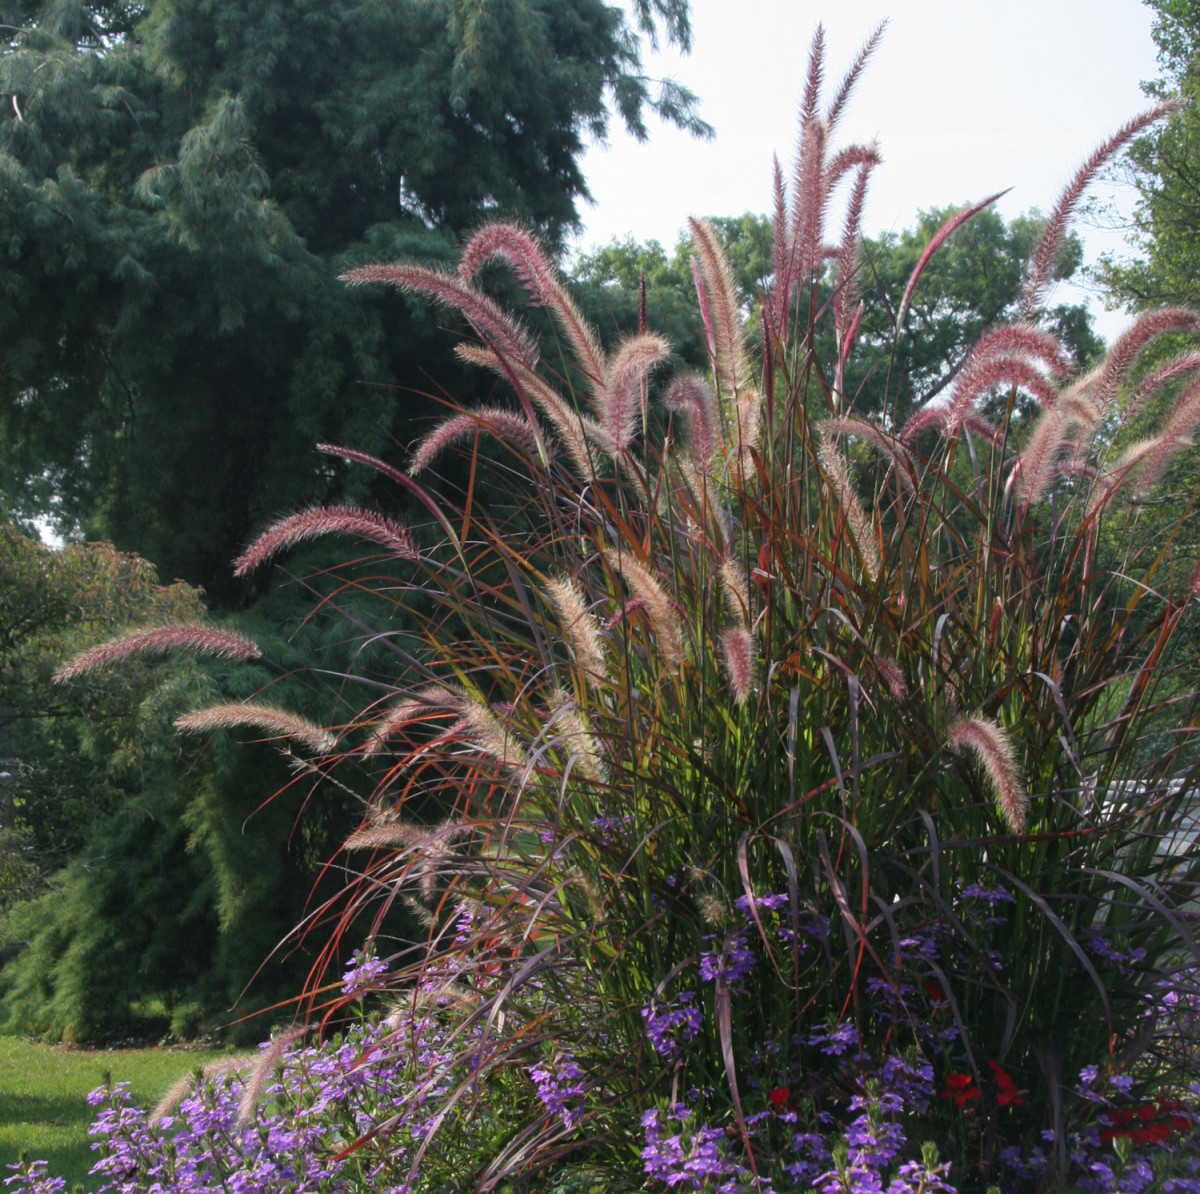 Colorful plumes of Pennisetum grass rise above an ornamental border.